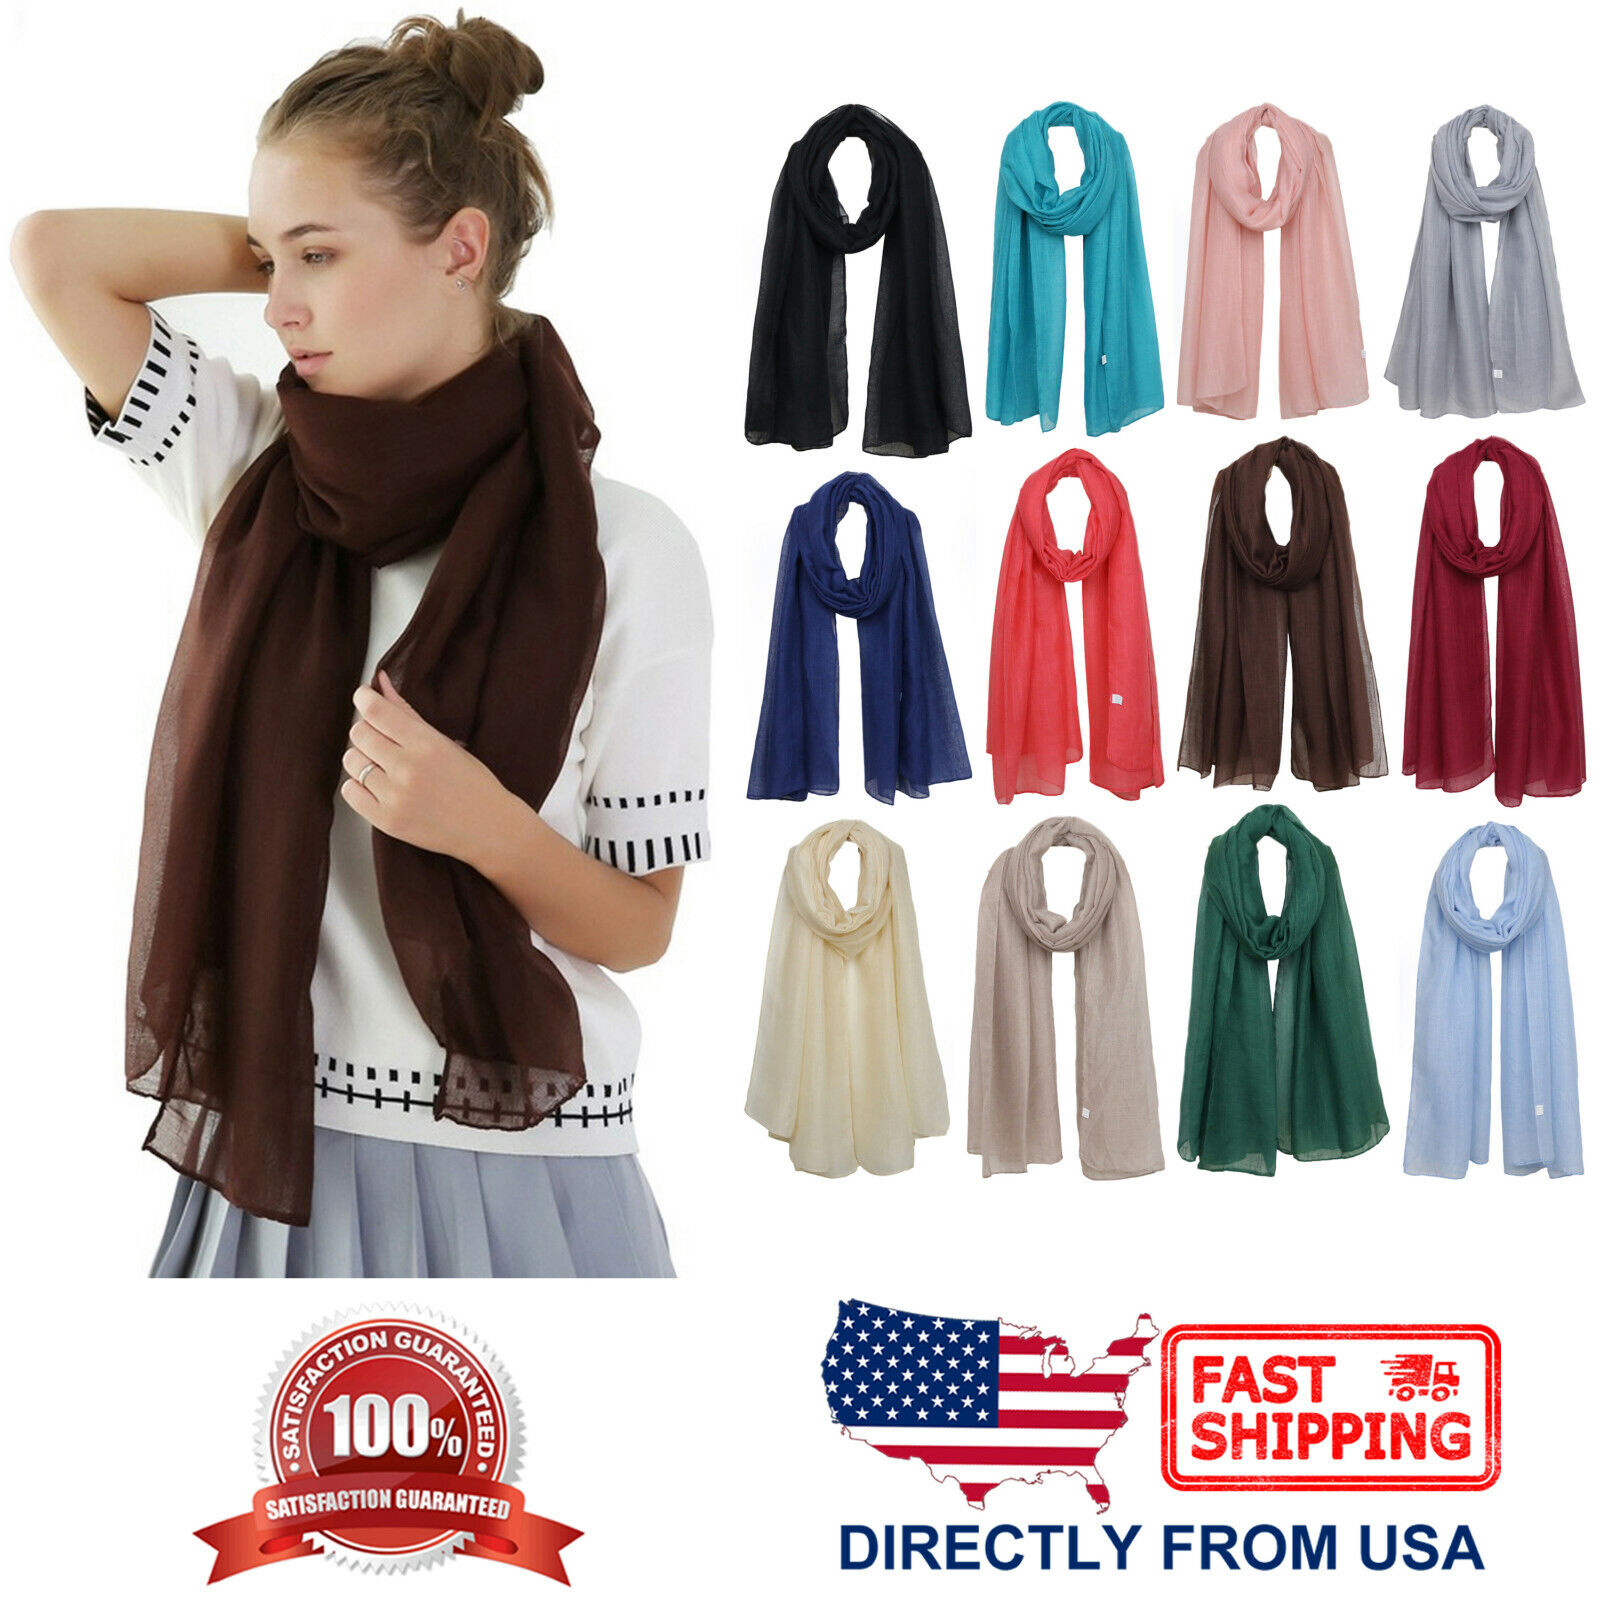 Women's Natural Dye Solid Color Long Shawl Lightweight Wrap Fashion Scarf Clothing, Shoes & Accessories